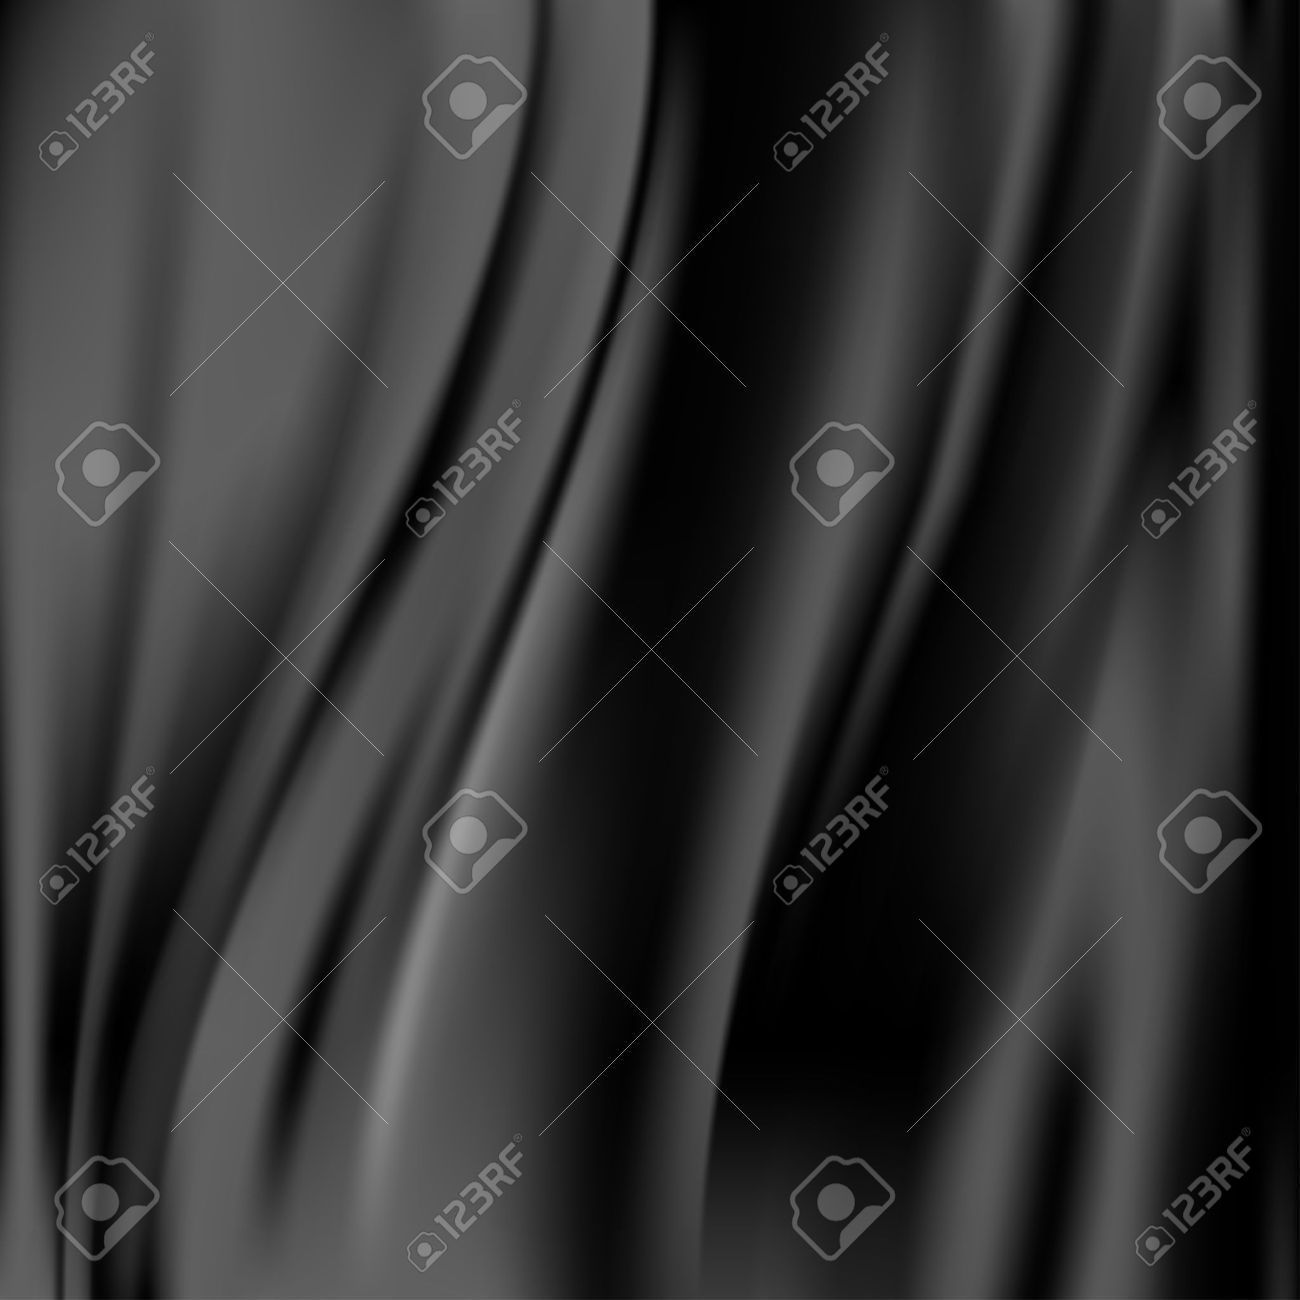 Black Curtain Texture black abstract satin curtain background royalty free cliparts